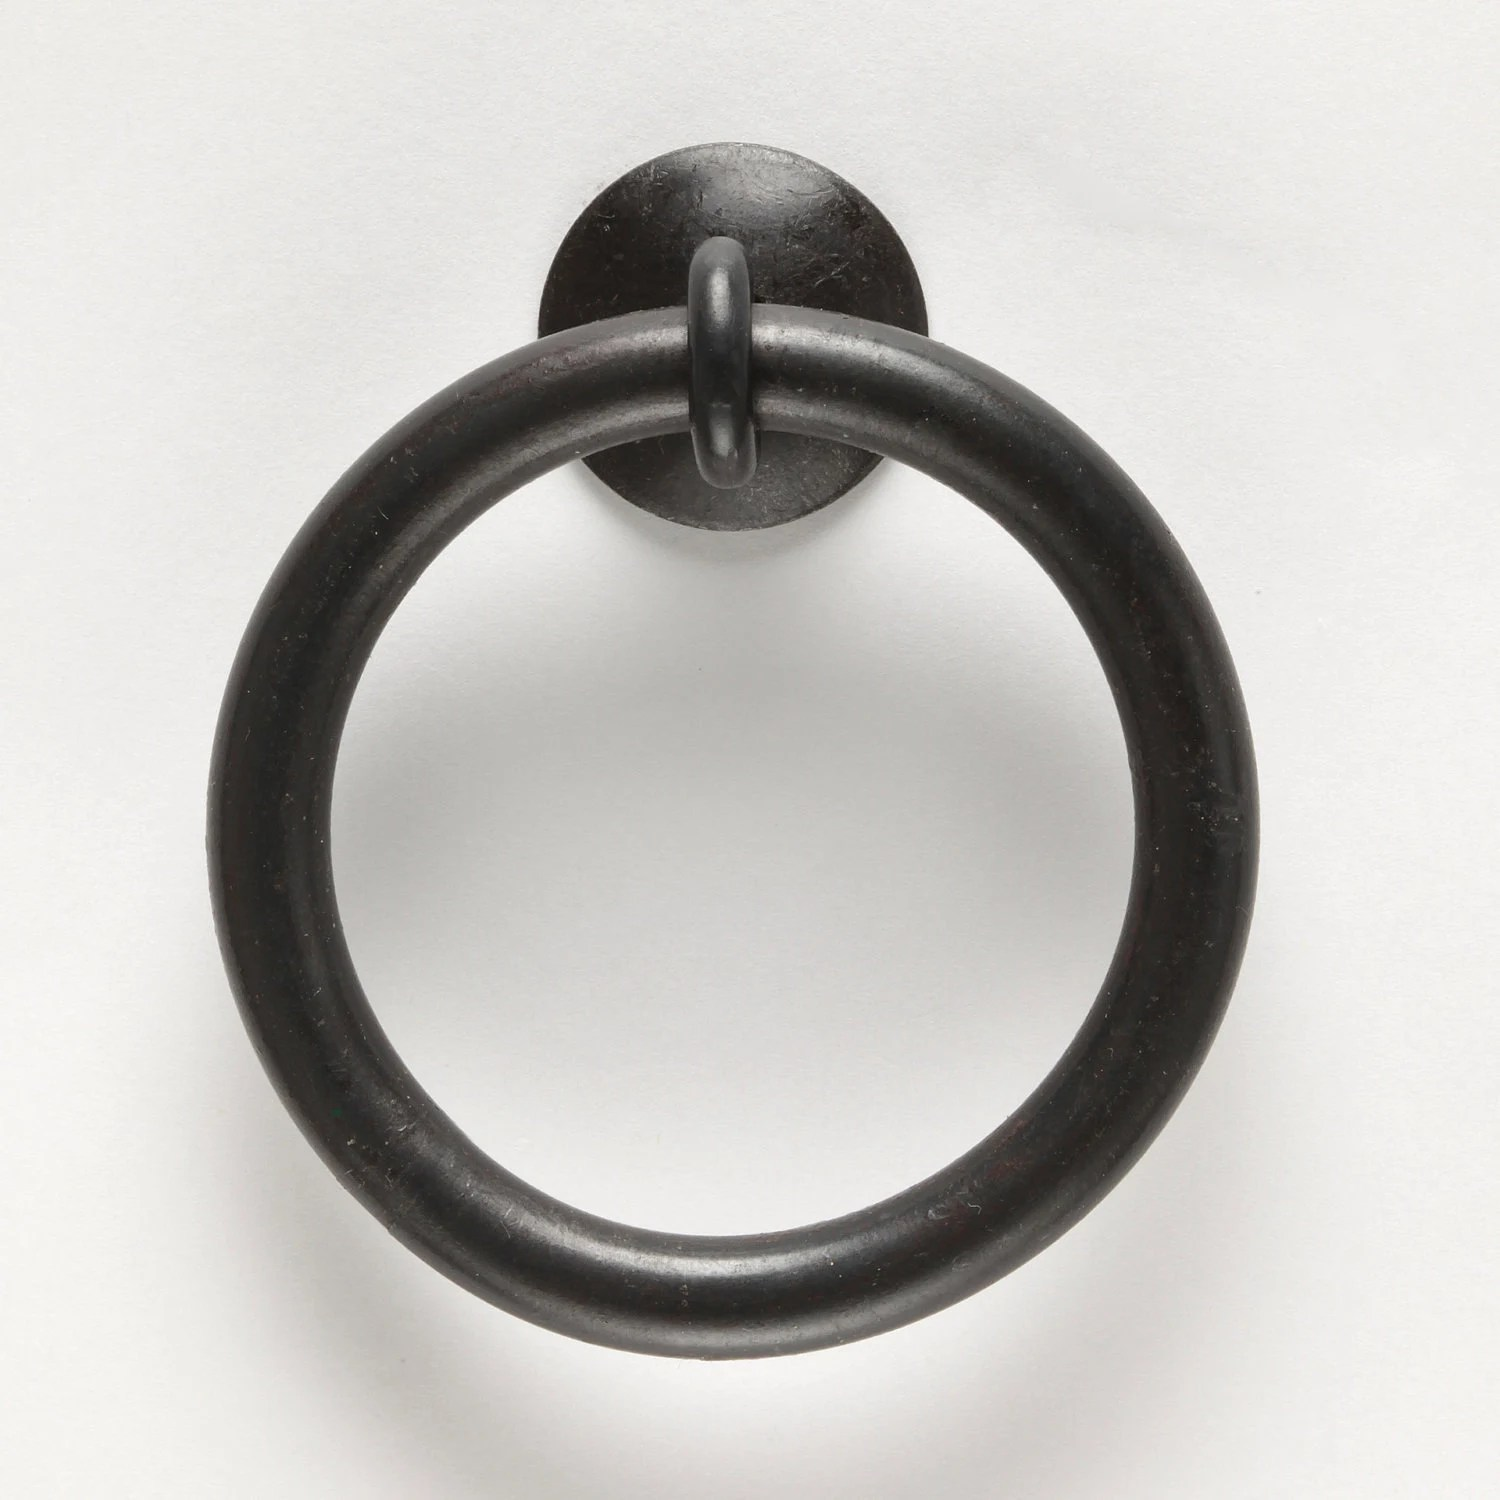 XL Thick Ring Pull Wrought Iron Kitchen Cabinet Hardware